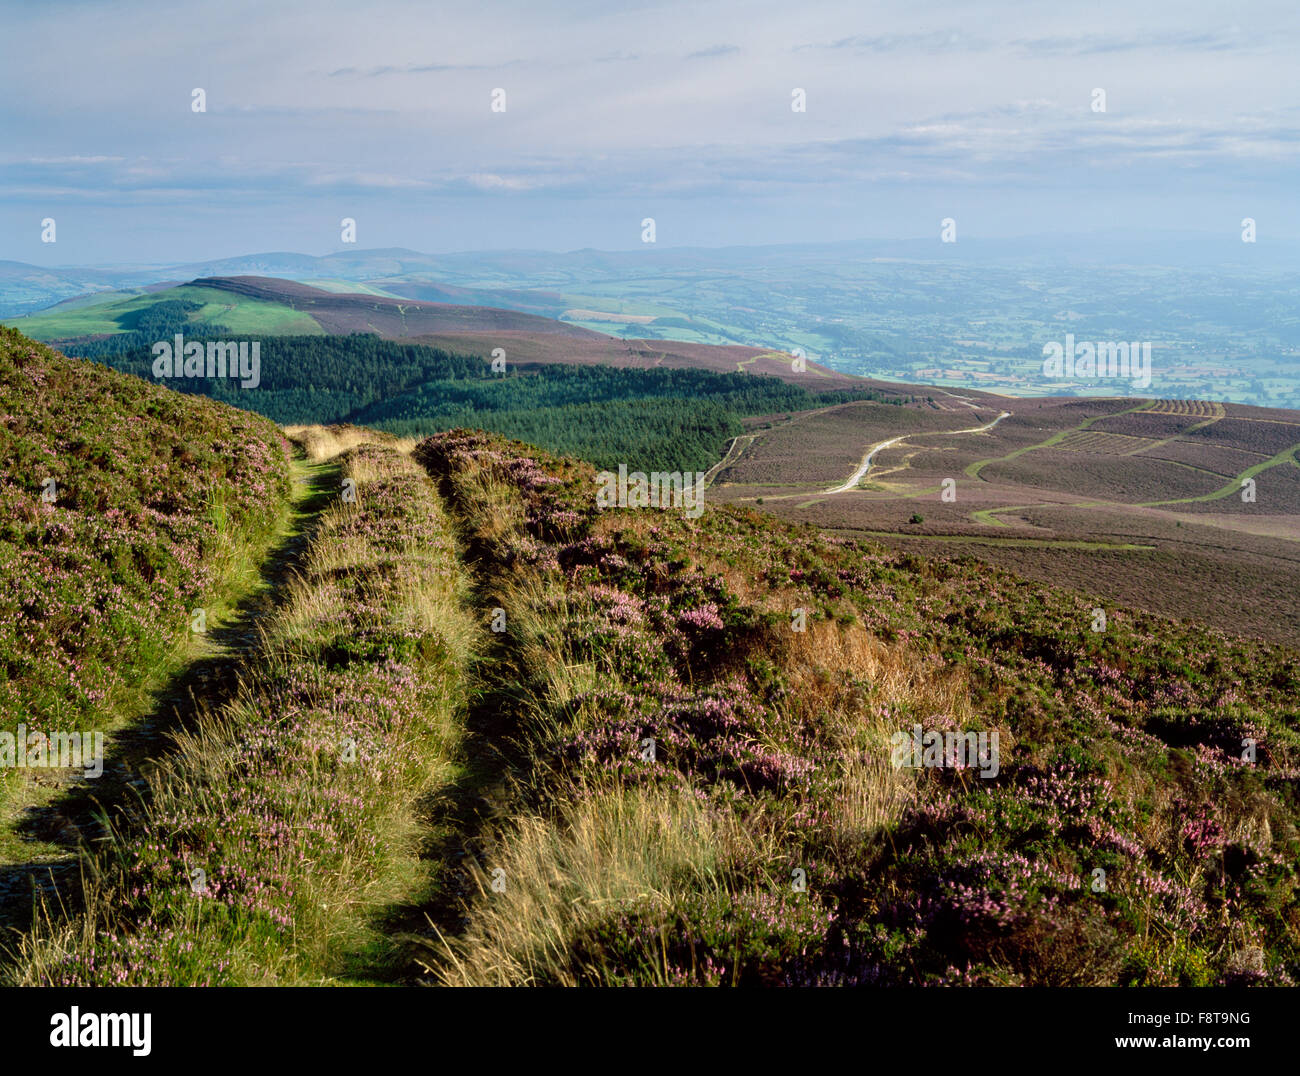 Looking S from summit of Moel Famau along Offa's Dyke Path to the multiple ramparts of Foel Fenlli hillfort, - Stock Image